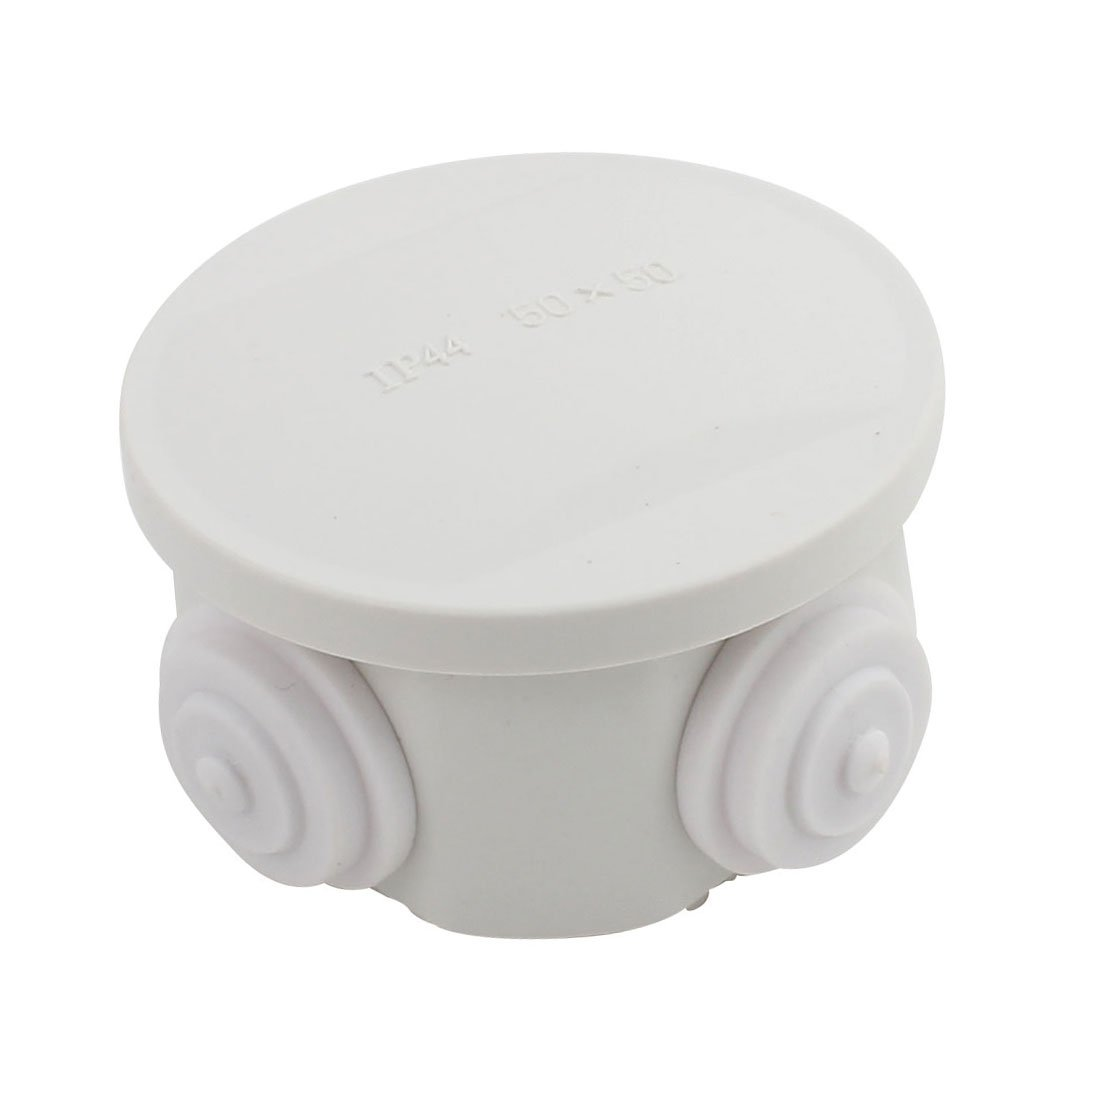 Awclub ABS Plastic Dustproof Waterproof IP65 Junction Box Universal Electrical Project Enclosure White D1.96